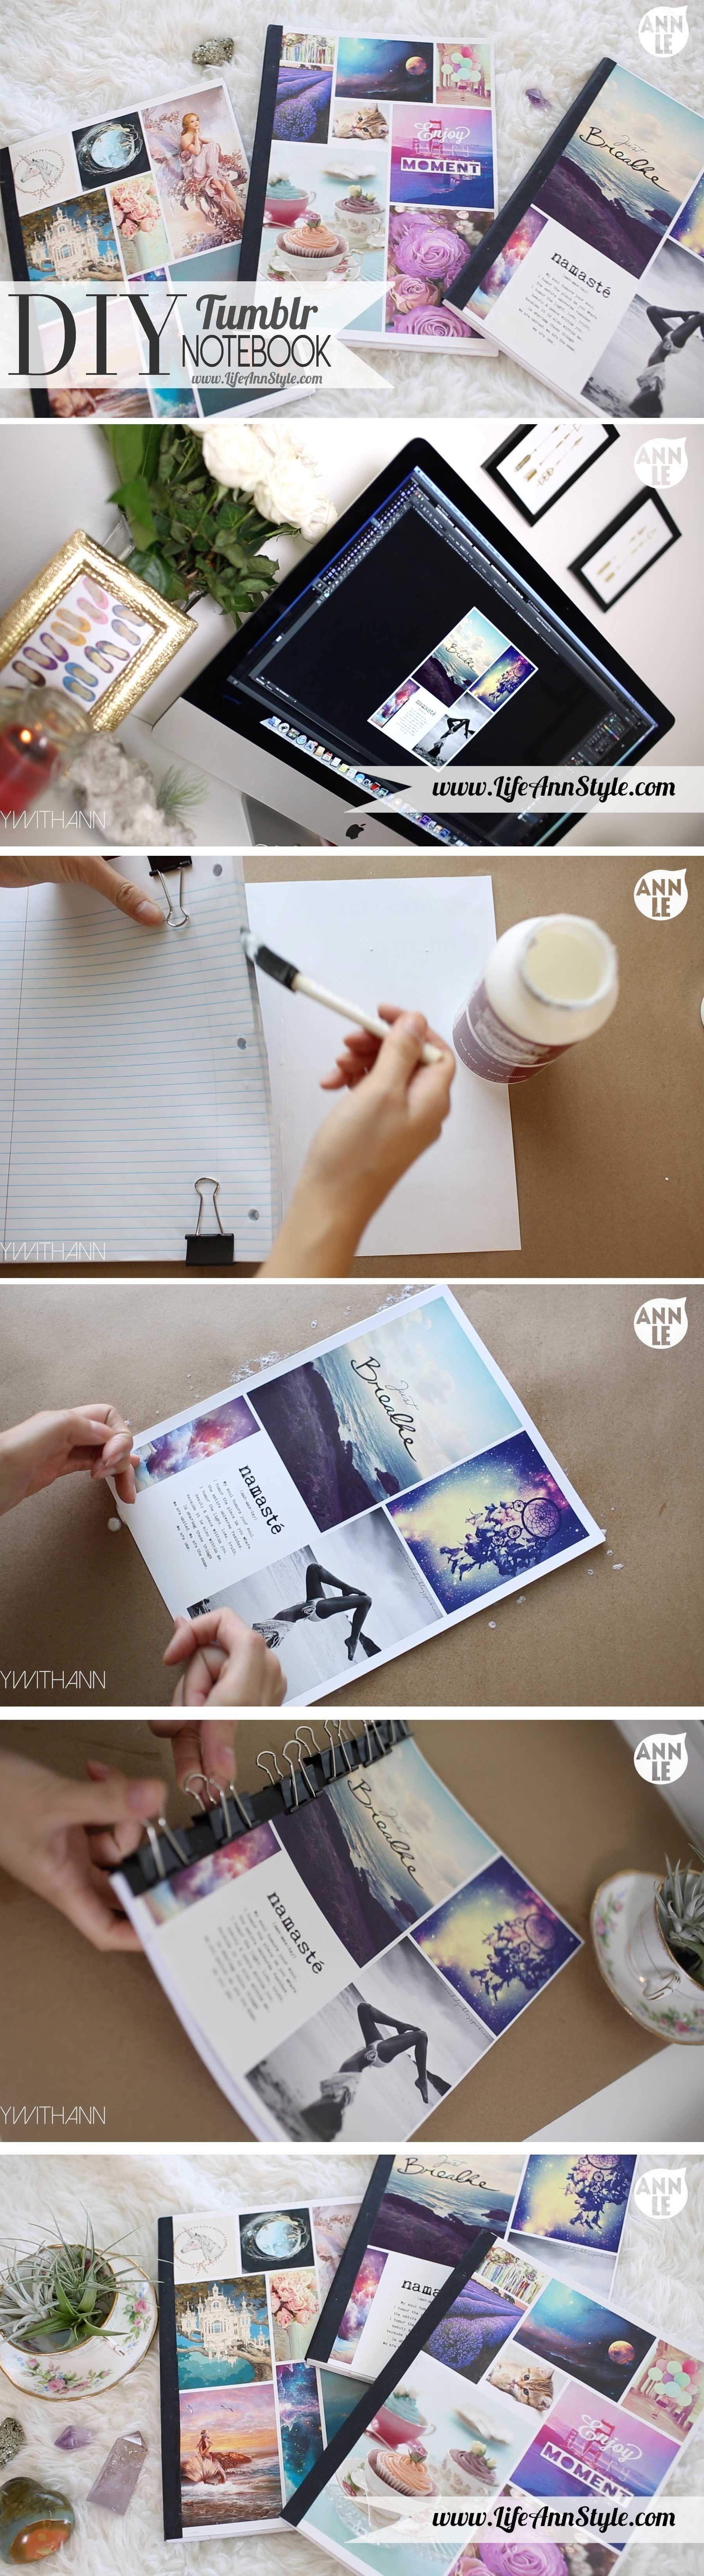 DIY Tumblr Inspired Notebook Pictures, Photos, and Images ...